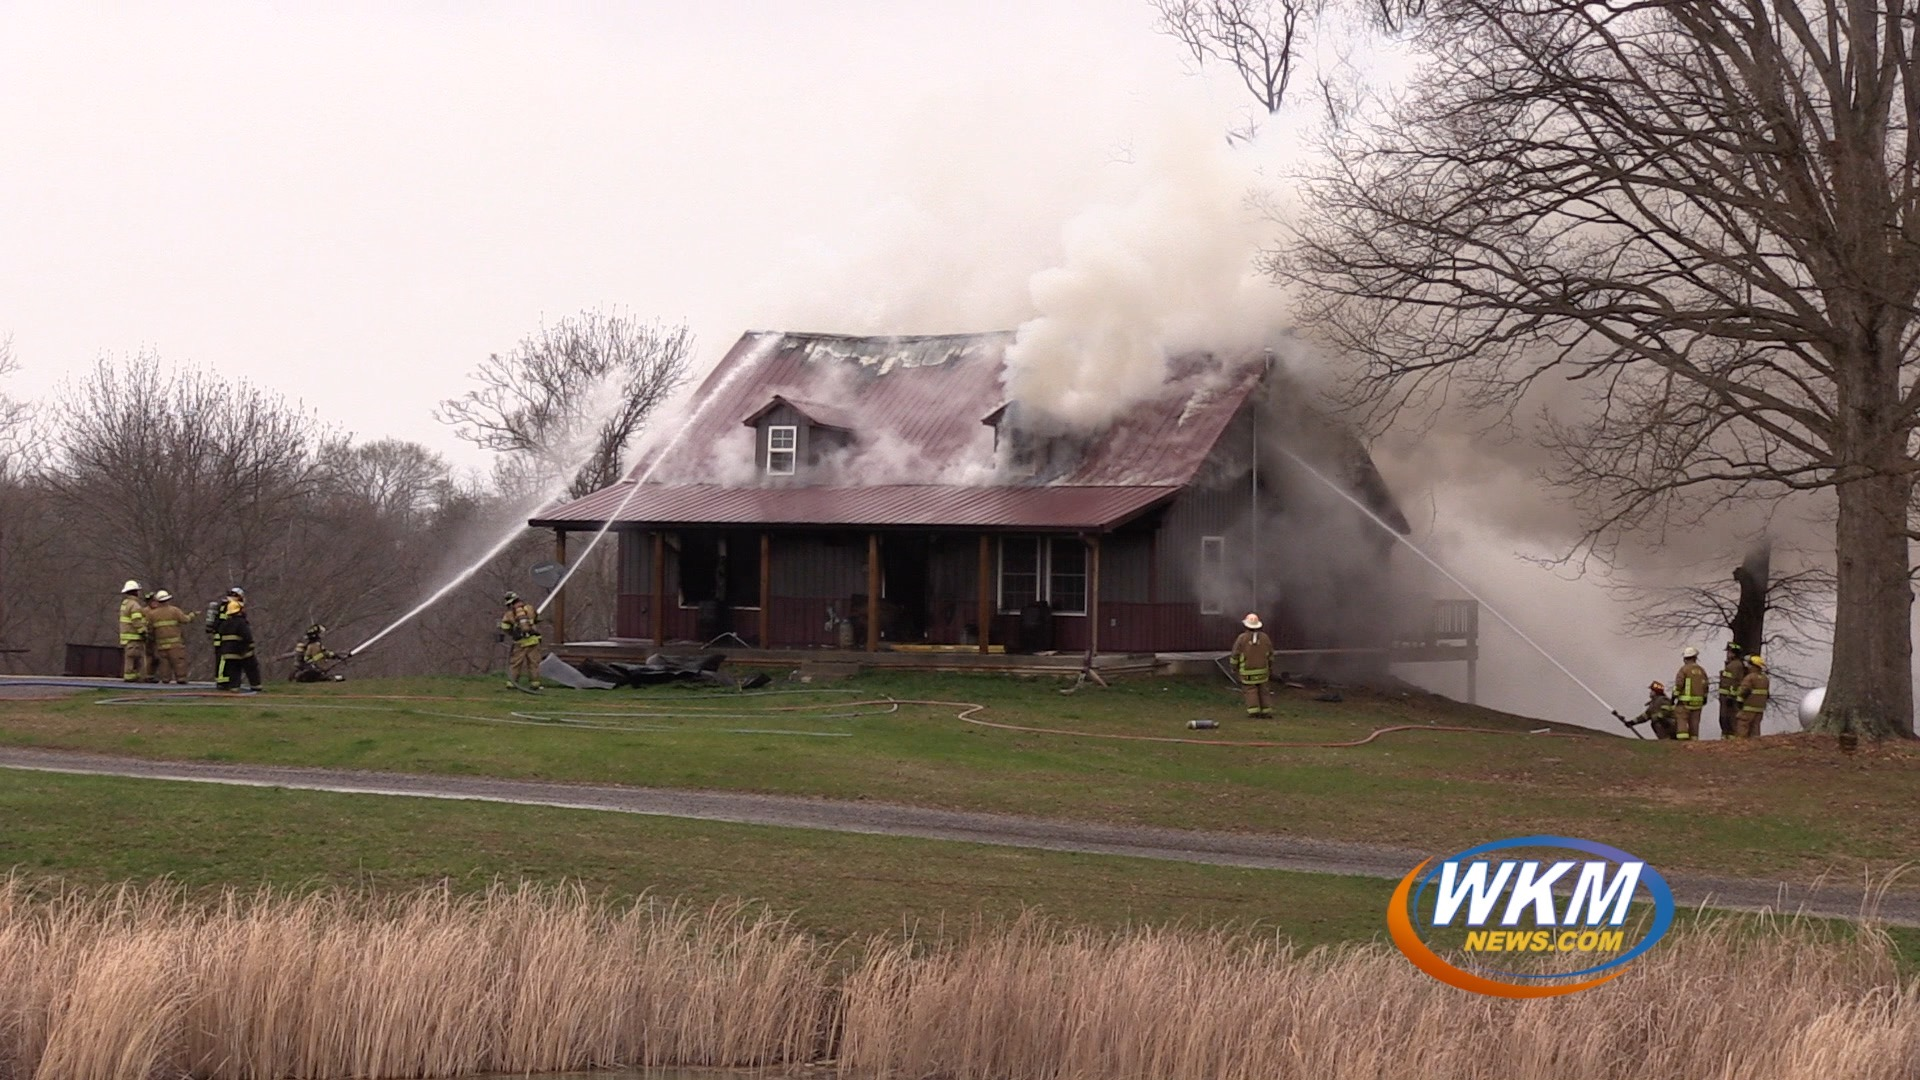 Several Local Fire Departments Assist at Milton Home Full of Flames